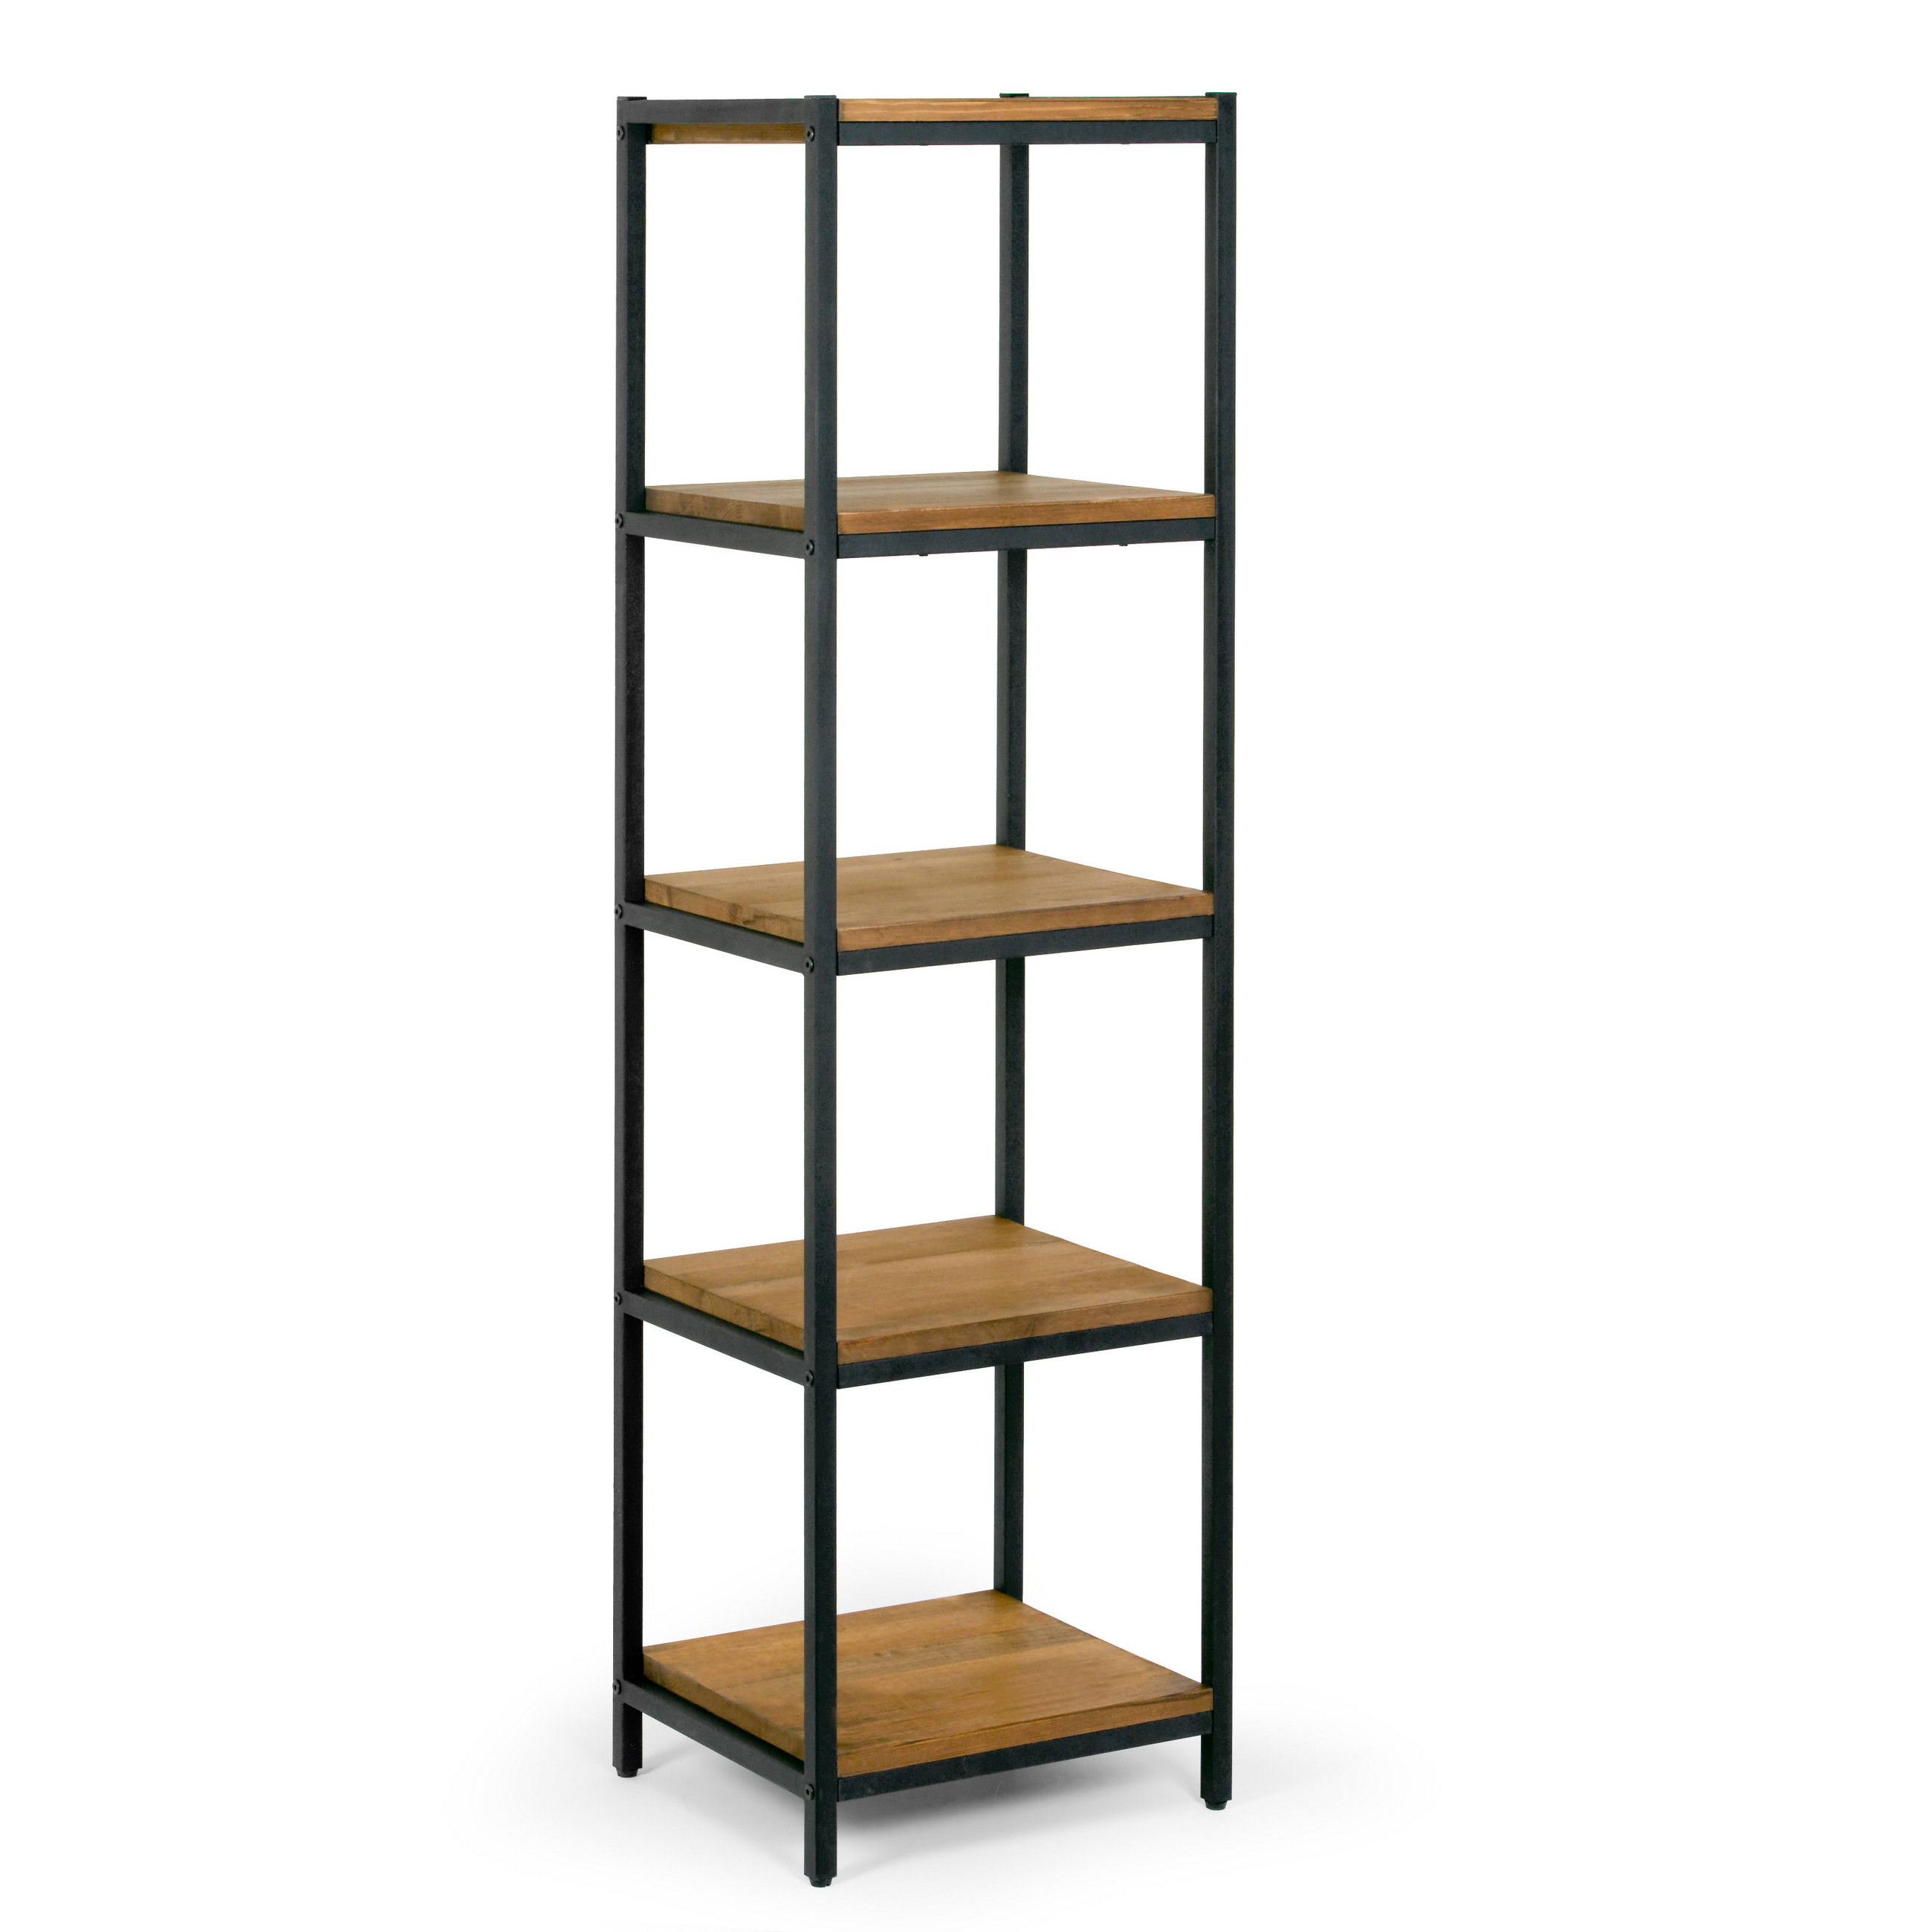 "Ailis 57"" Brown Pine Wood Shelf Etagere Bookcase Media Center with Metal Frame by Glamour Home"